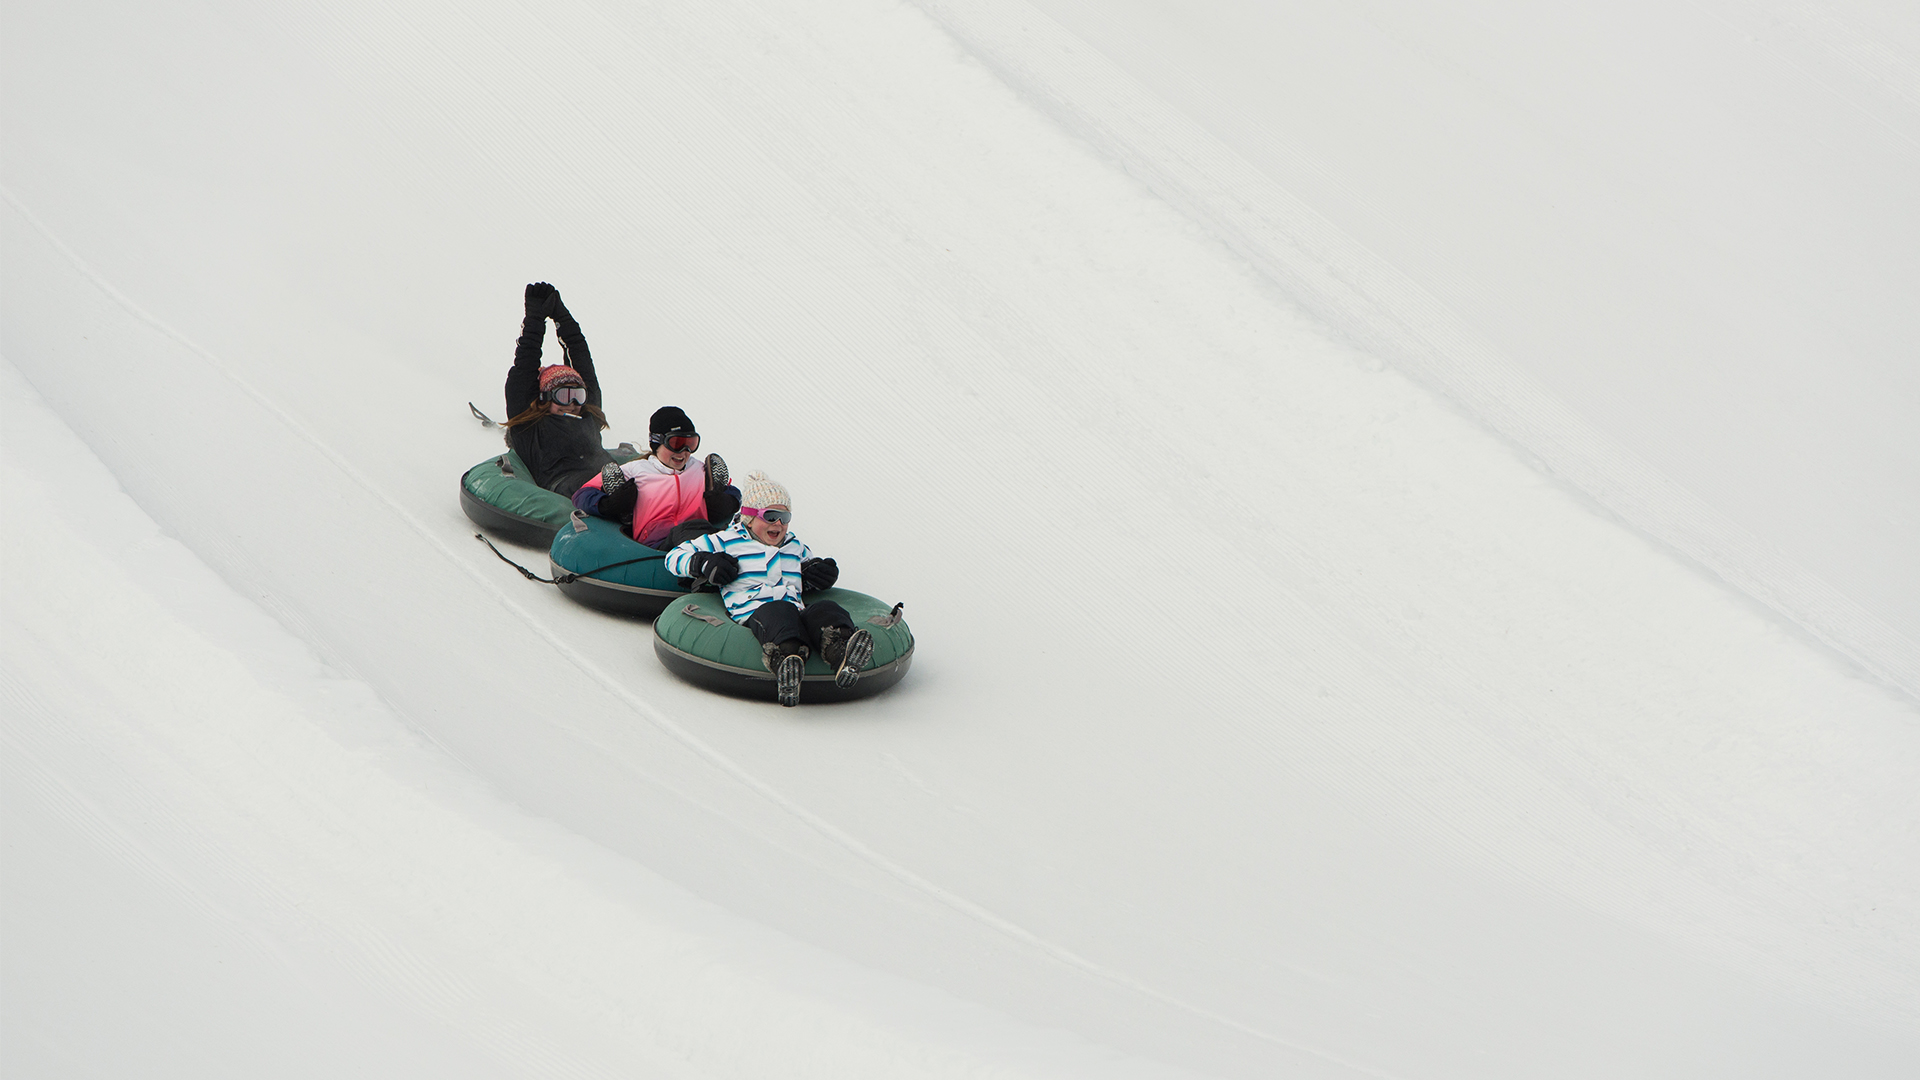 snowtubing - Top Winter Experiences in Ontario's Lake Country